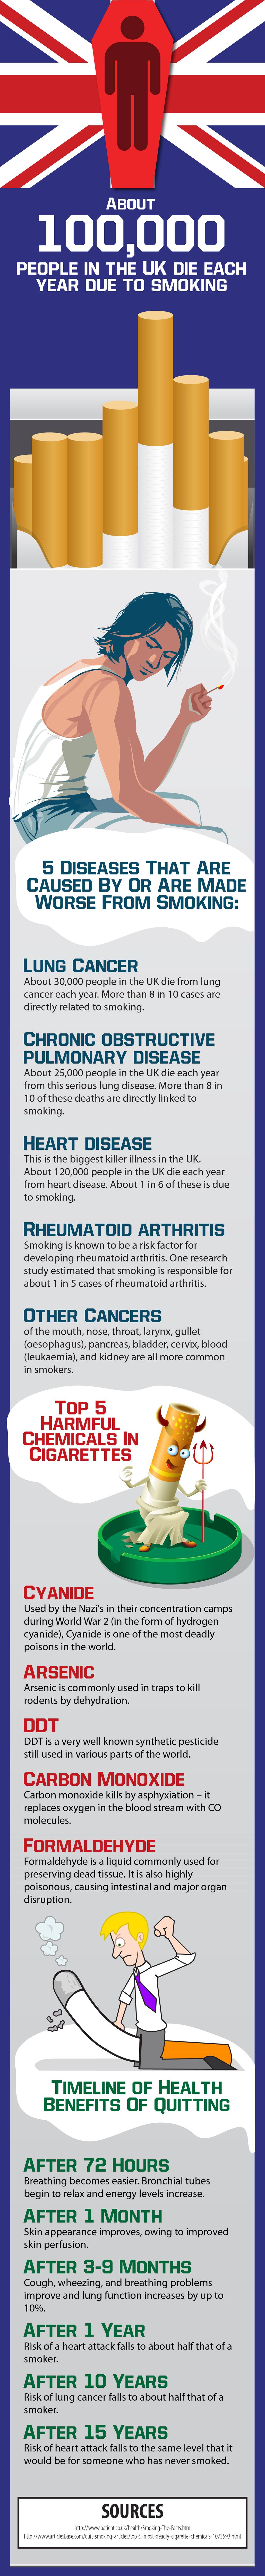 Interesting Smoking Facts Infographic